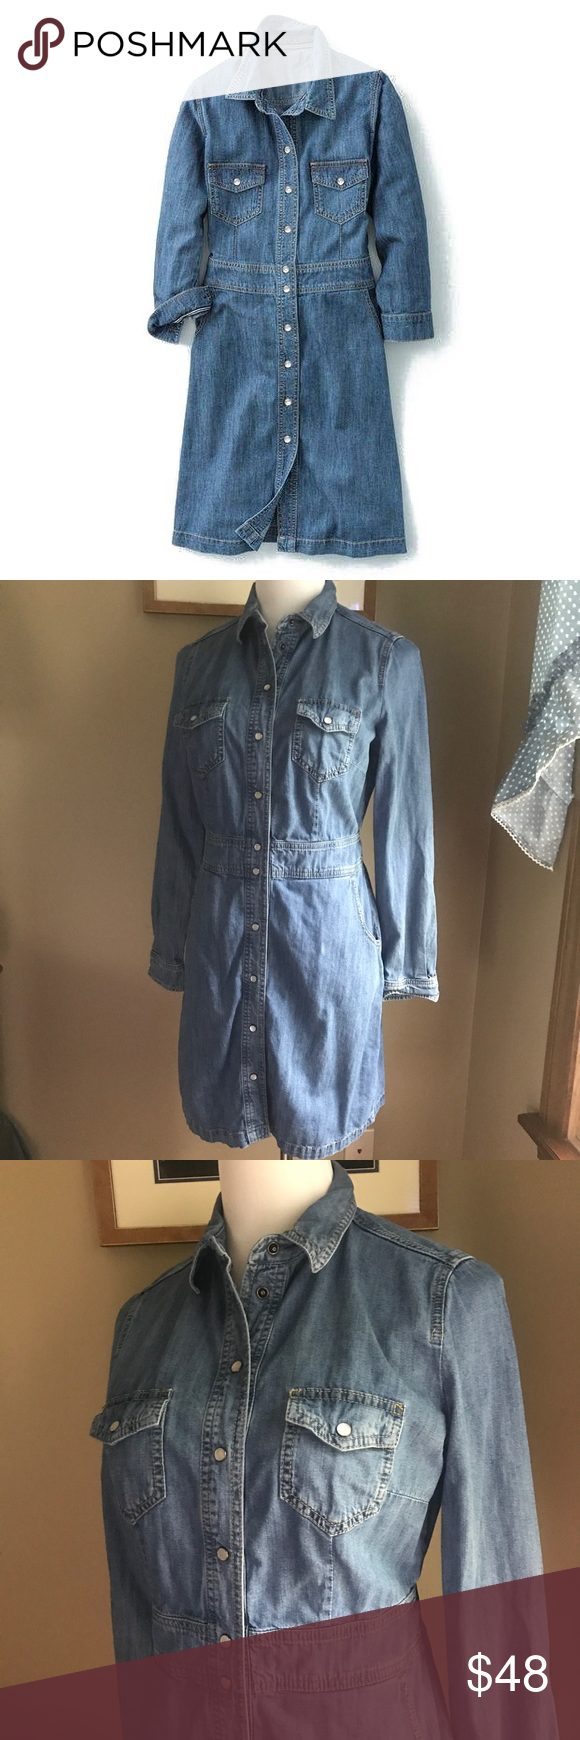 Boden button down denim dress size boden conditioning and